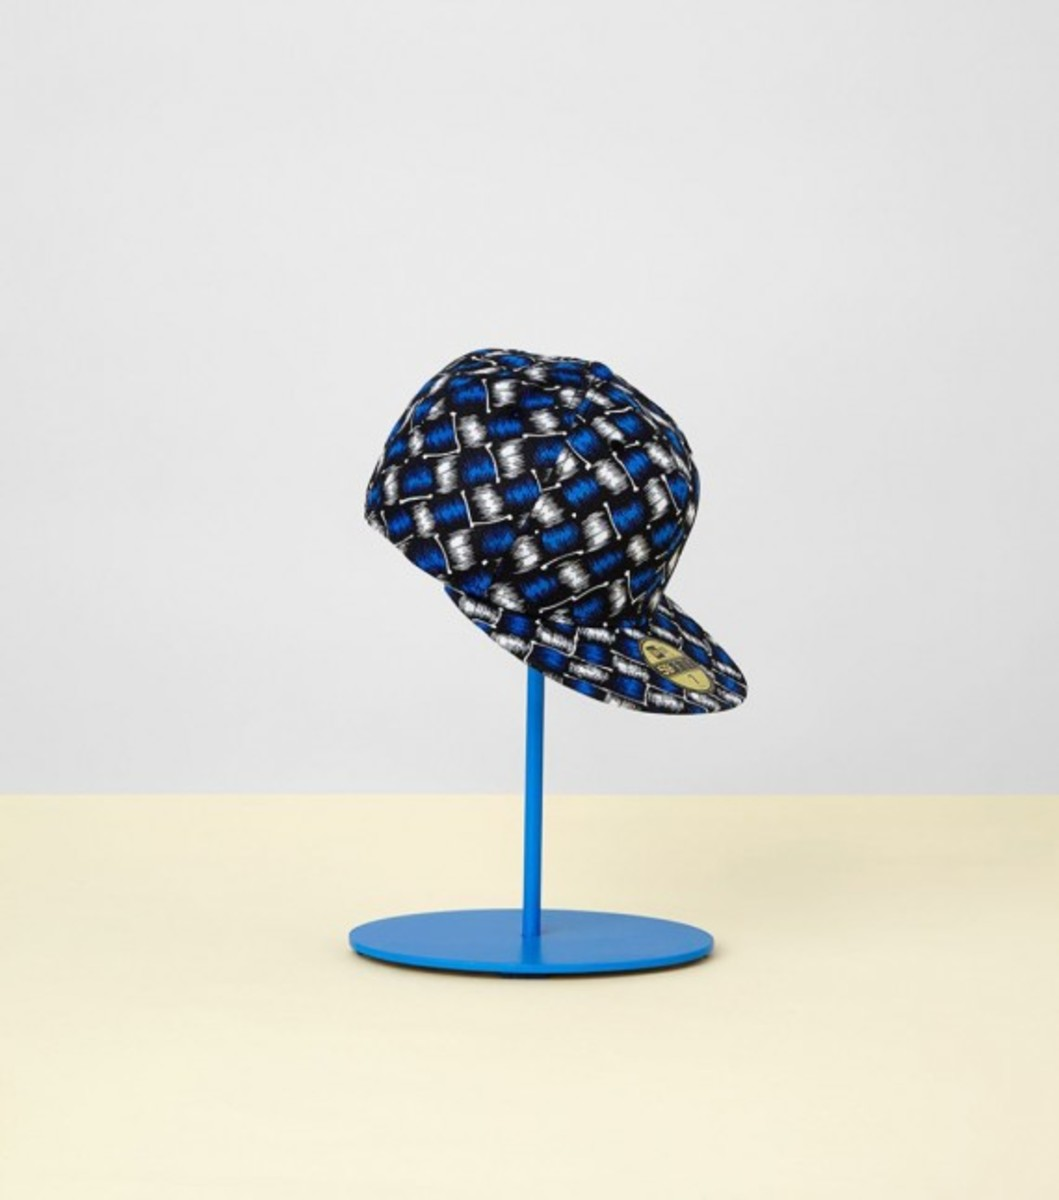 kenzo-new-era-spring-summer-2013-cap-collection-06